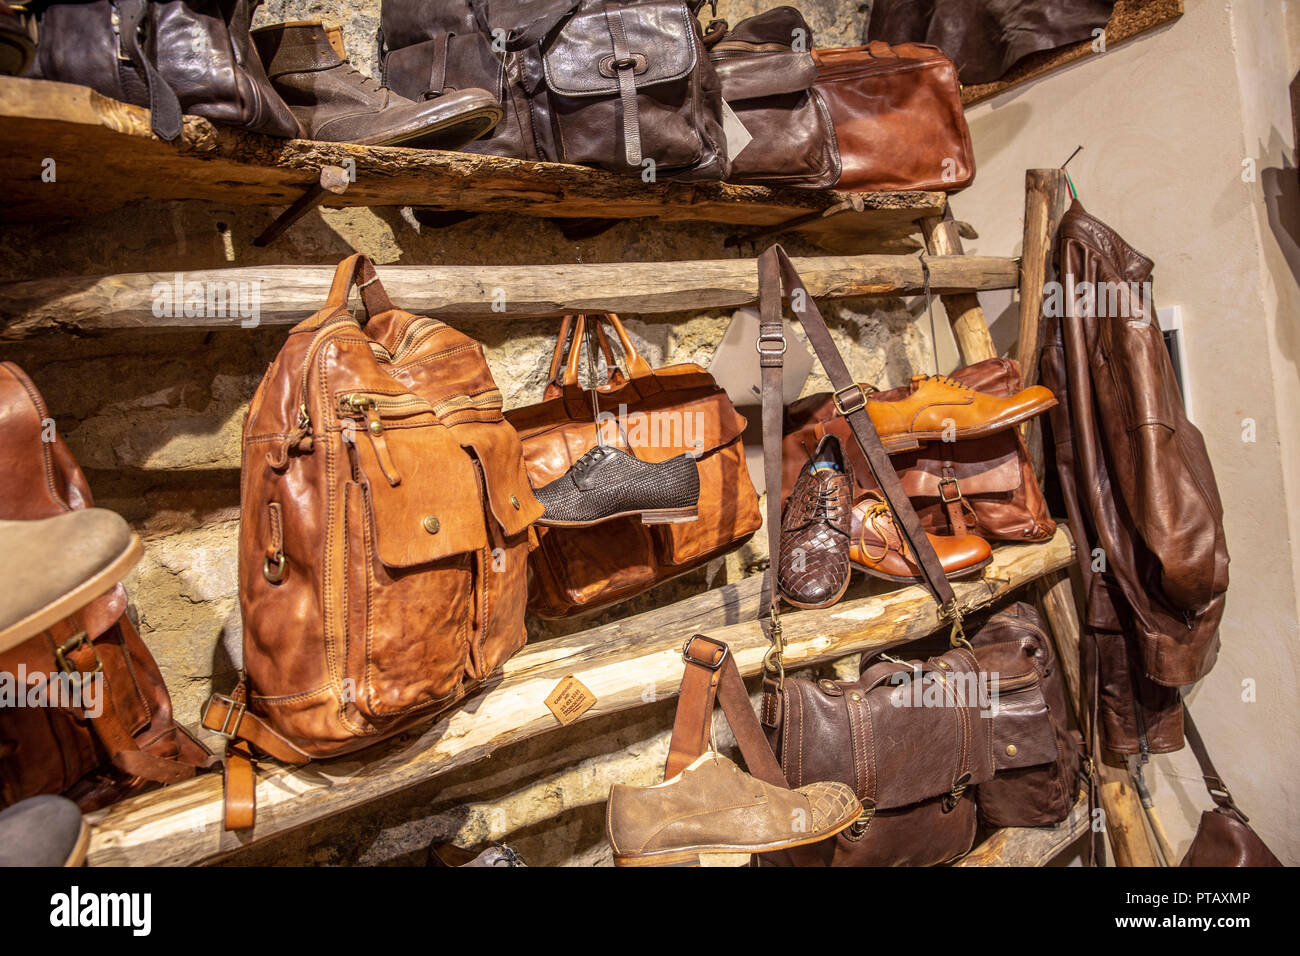 A Leather Goods Store Photos   A Leather Goods Store Images - Alamy ac57abf1d9c